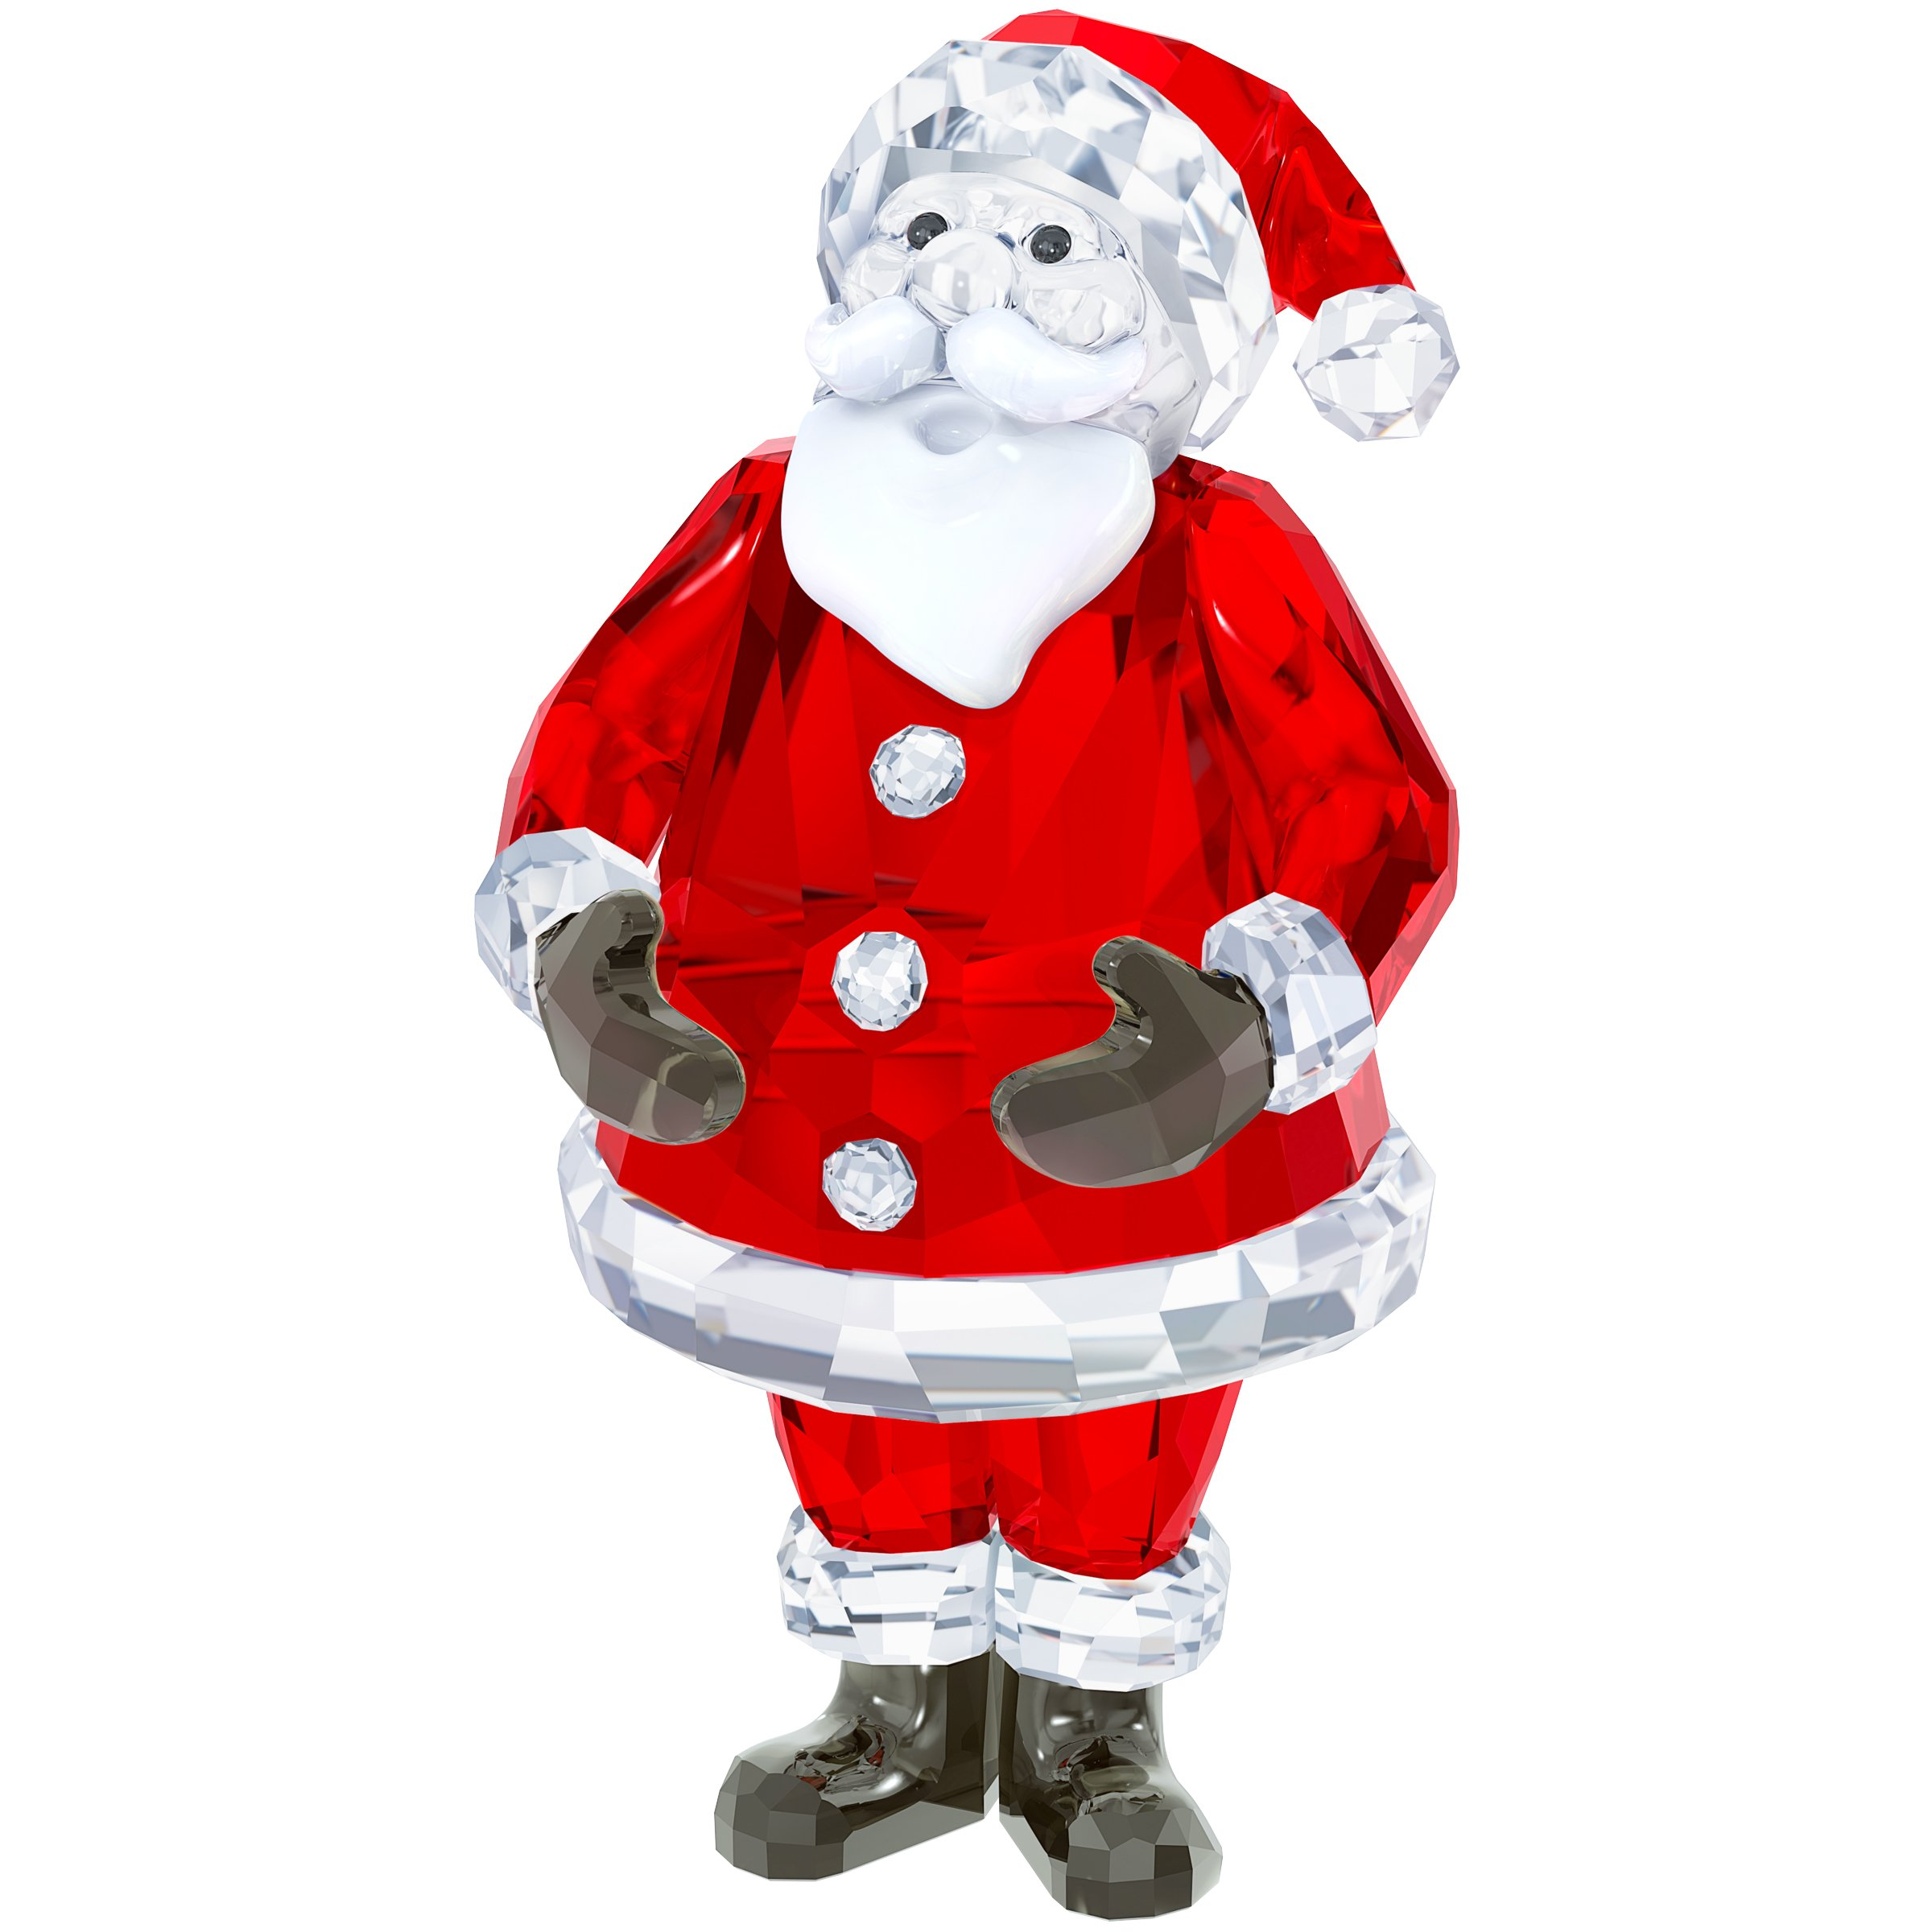 Swarovski Santa Claus Holiday Figurine